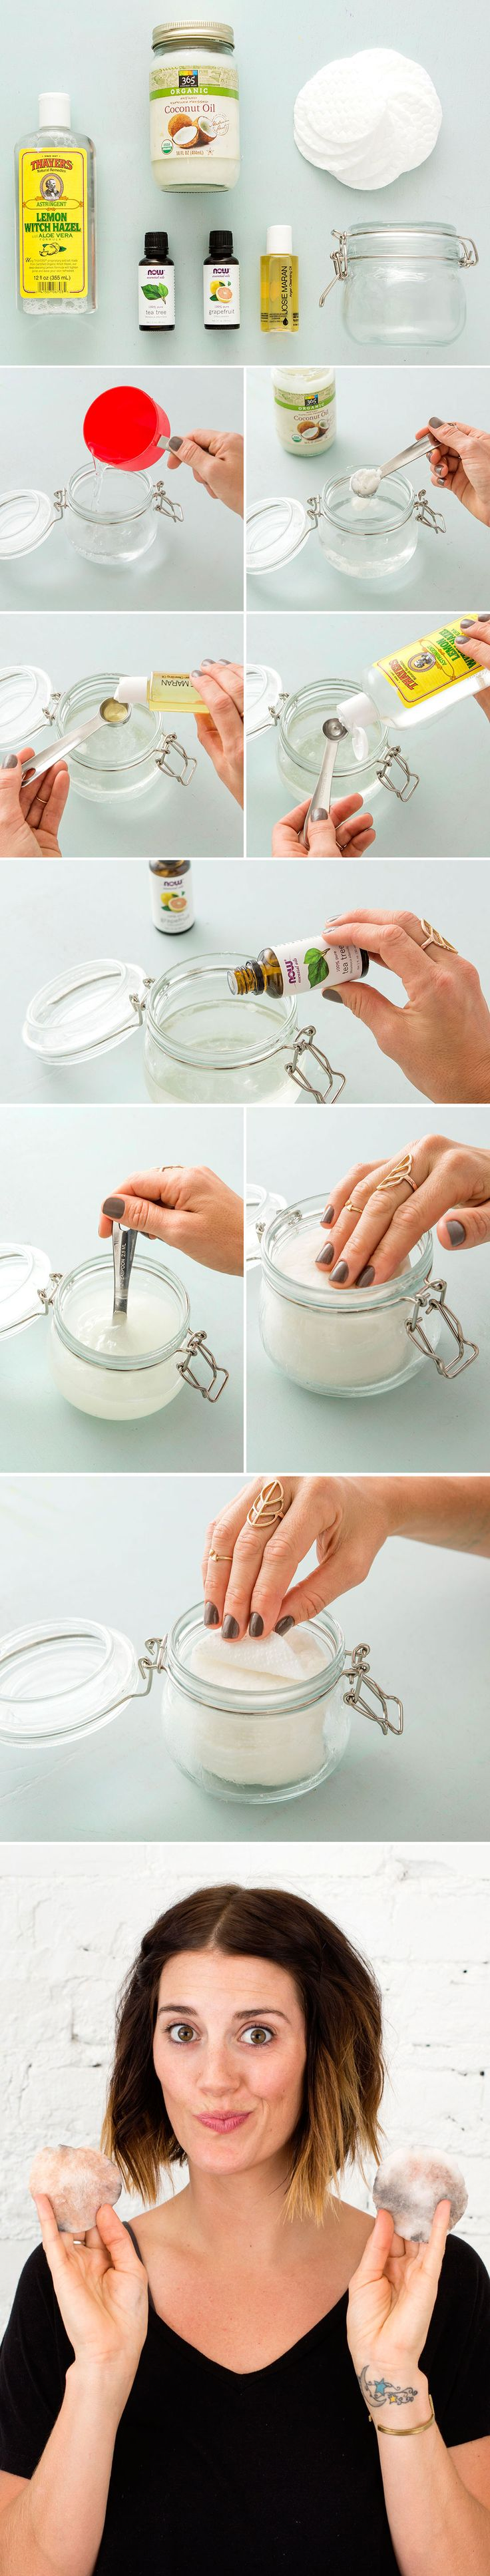 Follow this step-by-step to make your own makeup wipes.